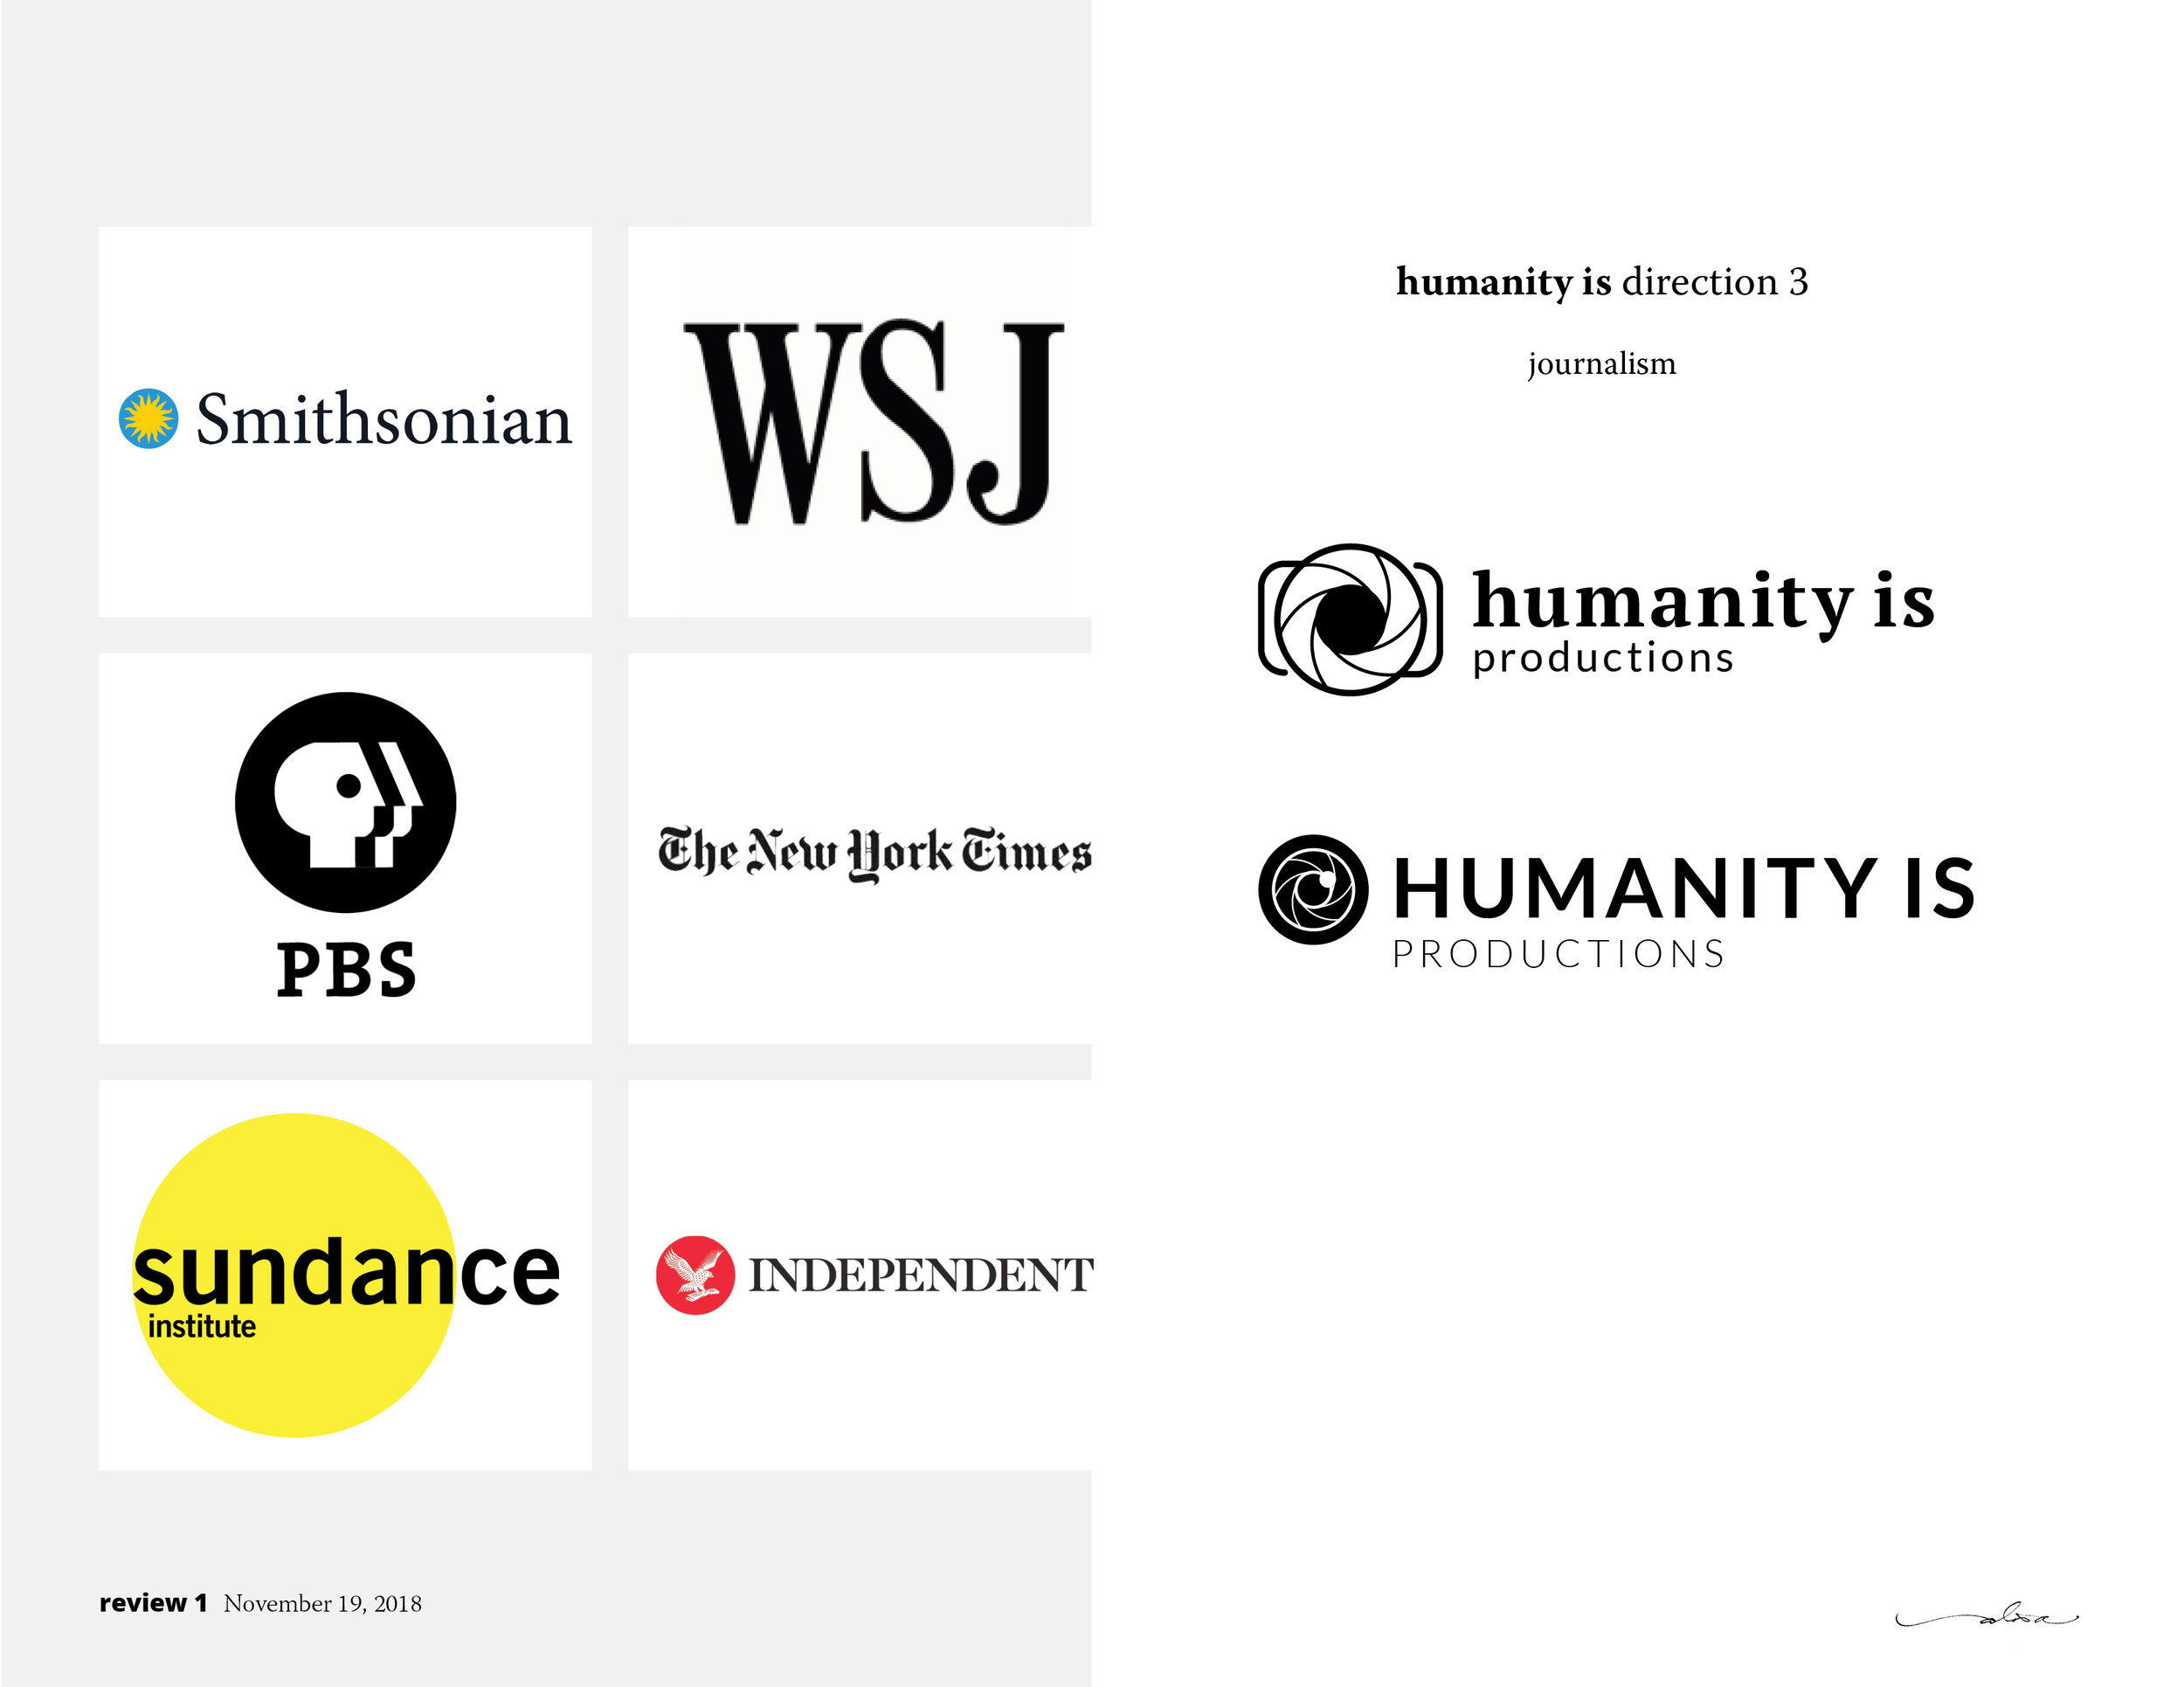 20181119_HumanityIs-Logo_Review1-v13.jpg